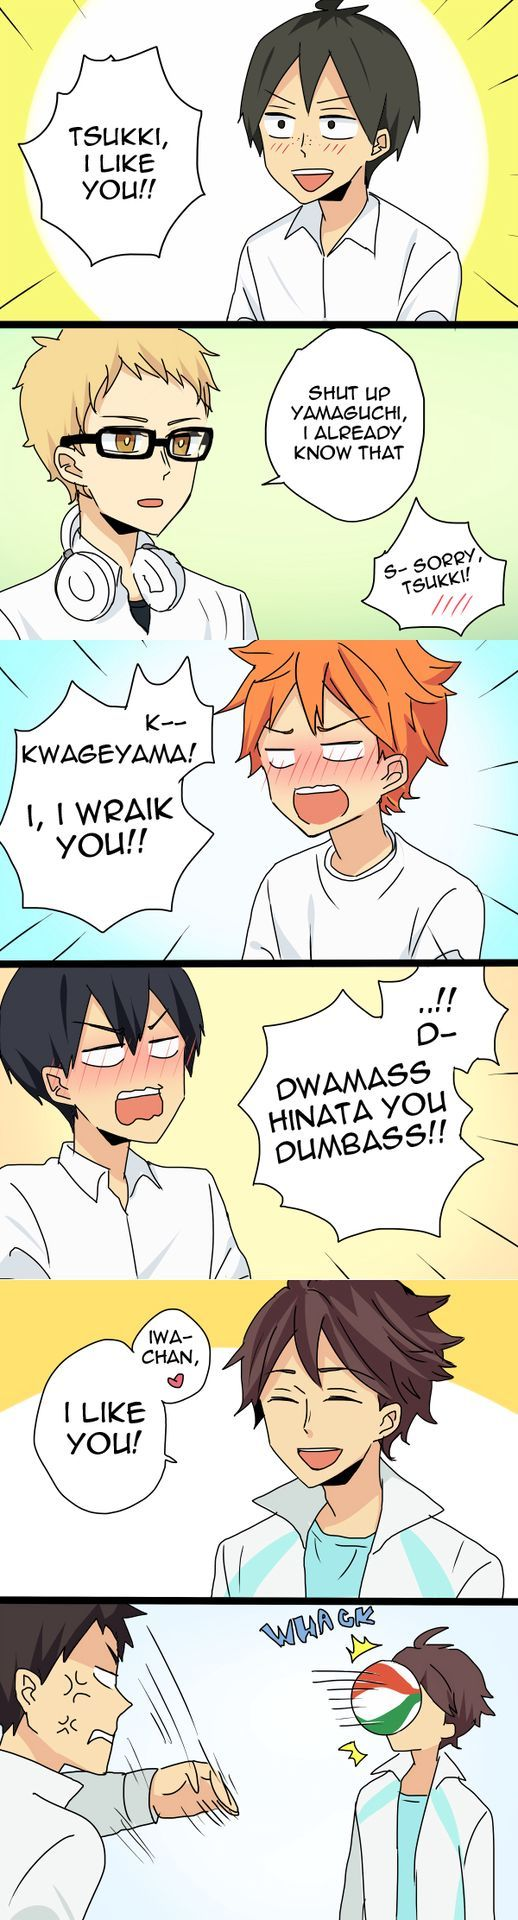 Yams, it's not good lying to yourself like that. You don't like Tsukki, you LOVE him.